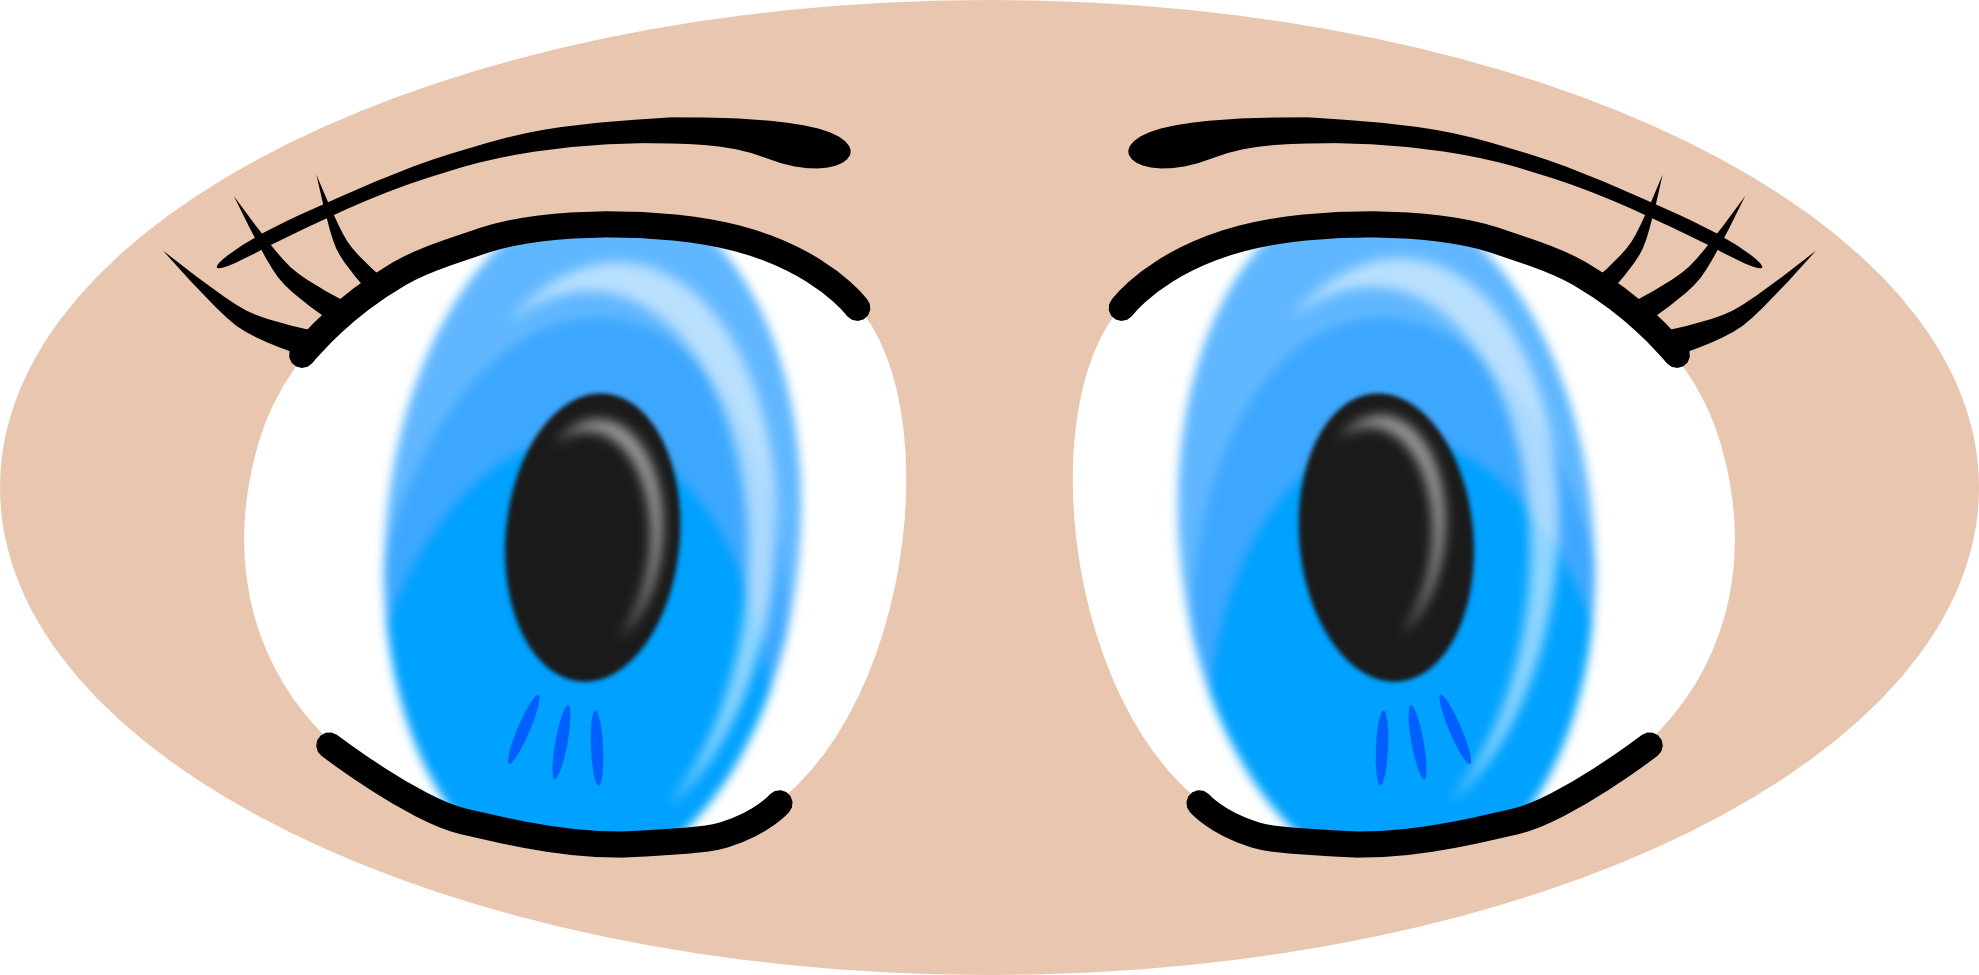 1979x975 Eyes eye stock illustrations eye clip art images and image